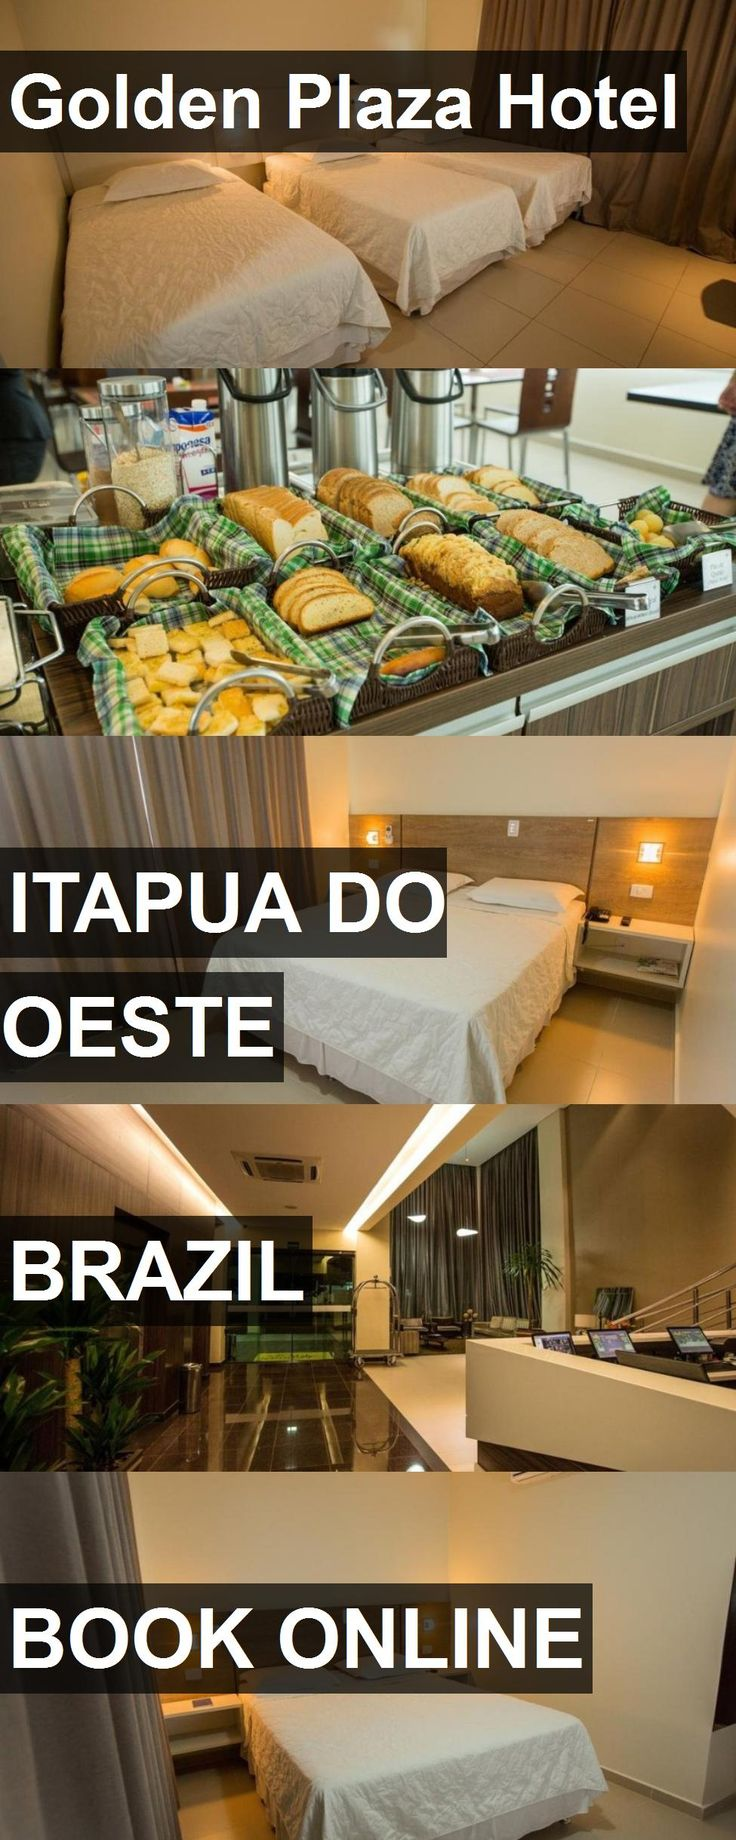 Golden Plaza Hotel in Itapua do Oeste, Brazil. For more information, photos, reviews and best prices please follow the link. #Brazil #ItapuadoOeste #travel #vacation #hotel